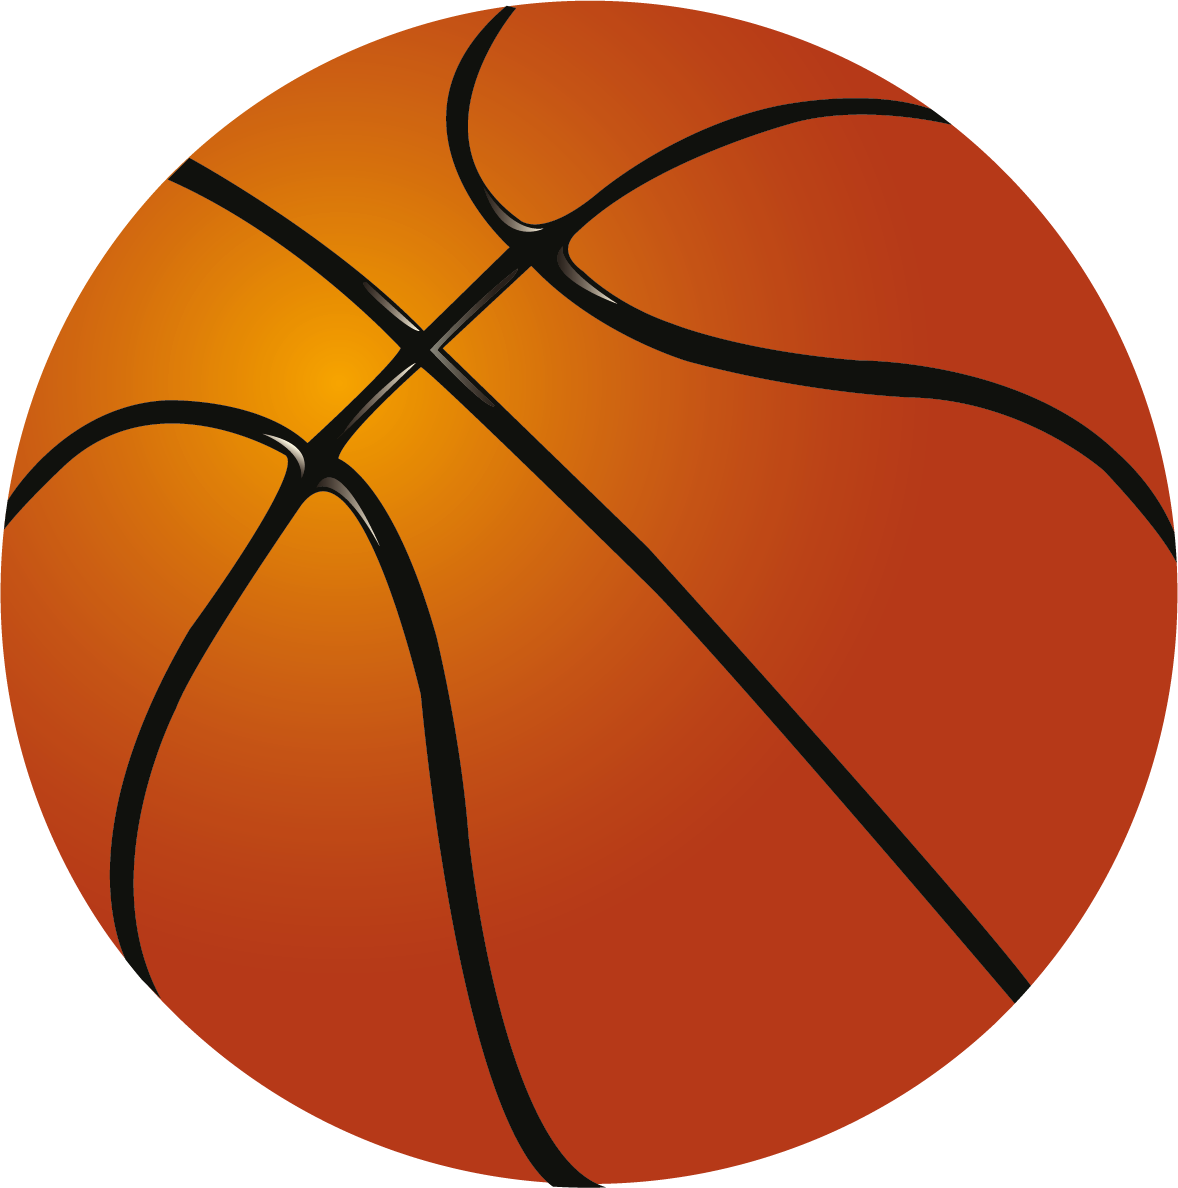 clip art images basketball - photo #19